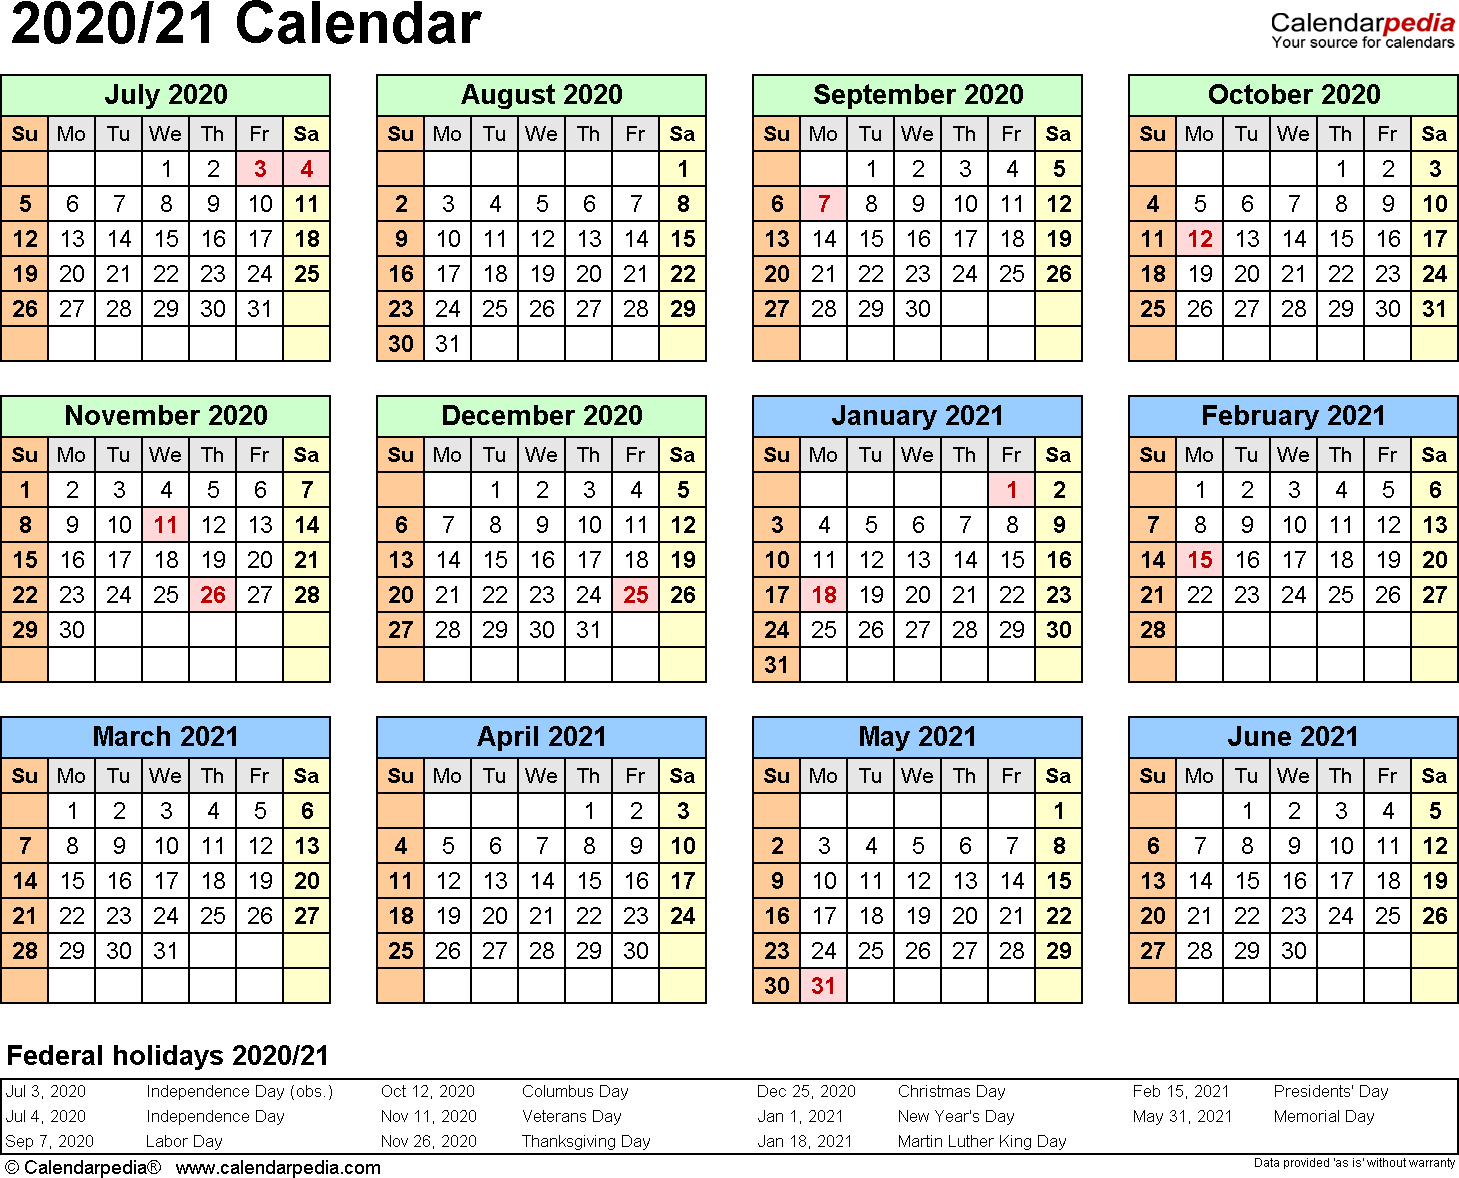 Split Year Calendar 2020/21 (July To June) - Word Templates